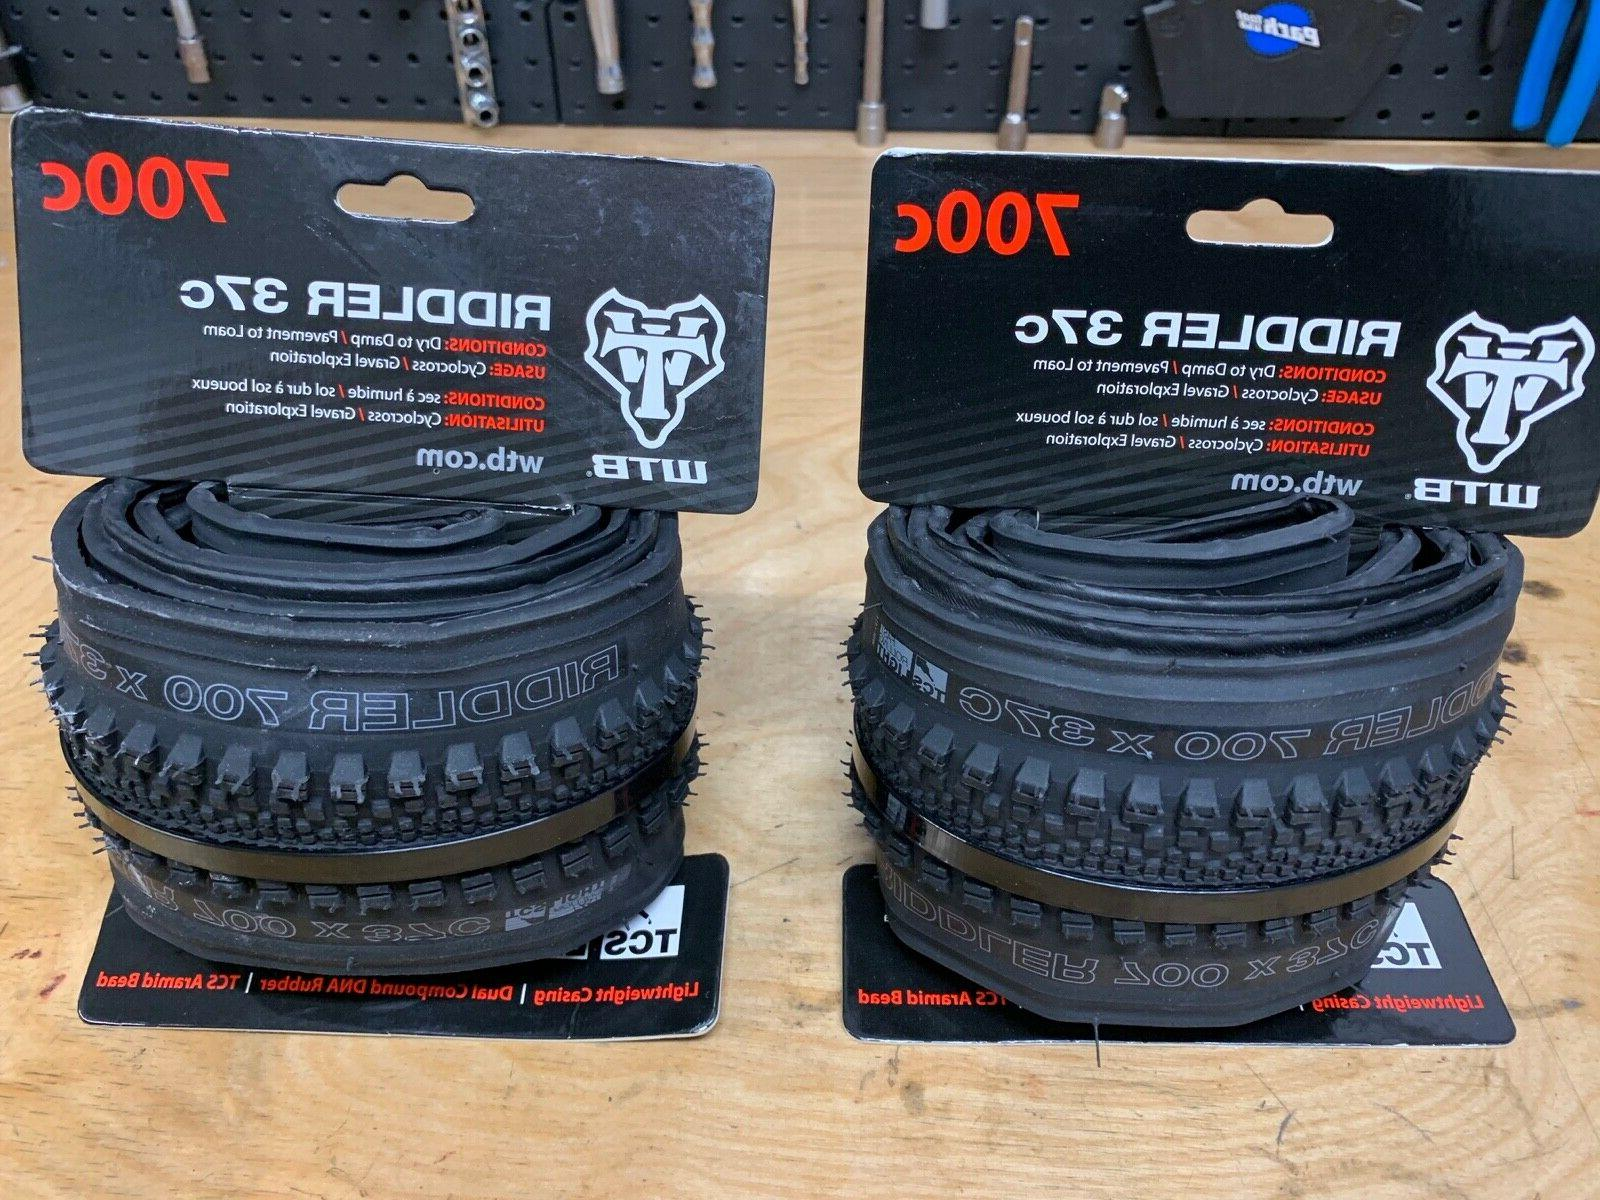 new pair riddler 700 x 37c tcs